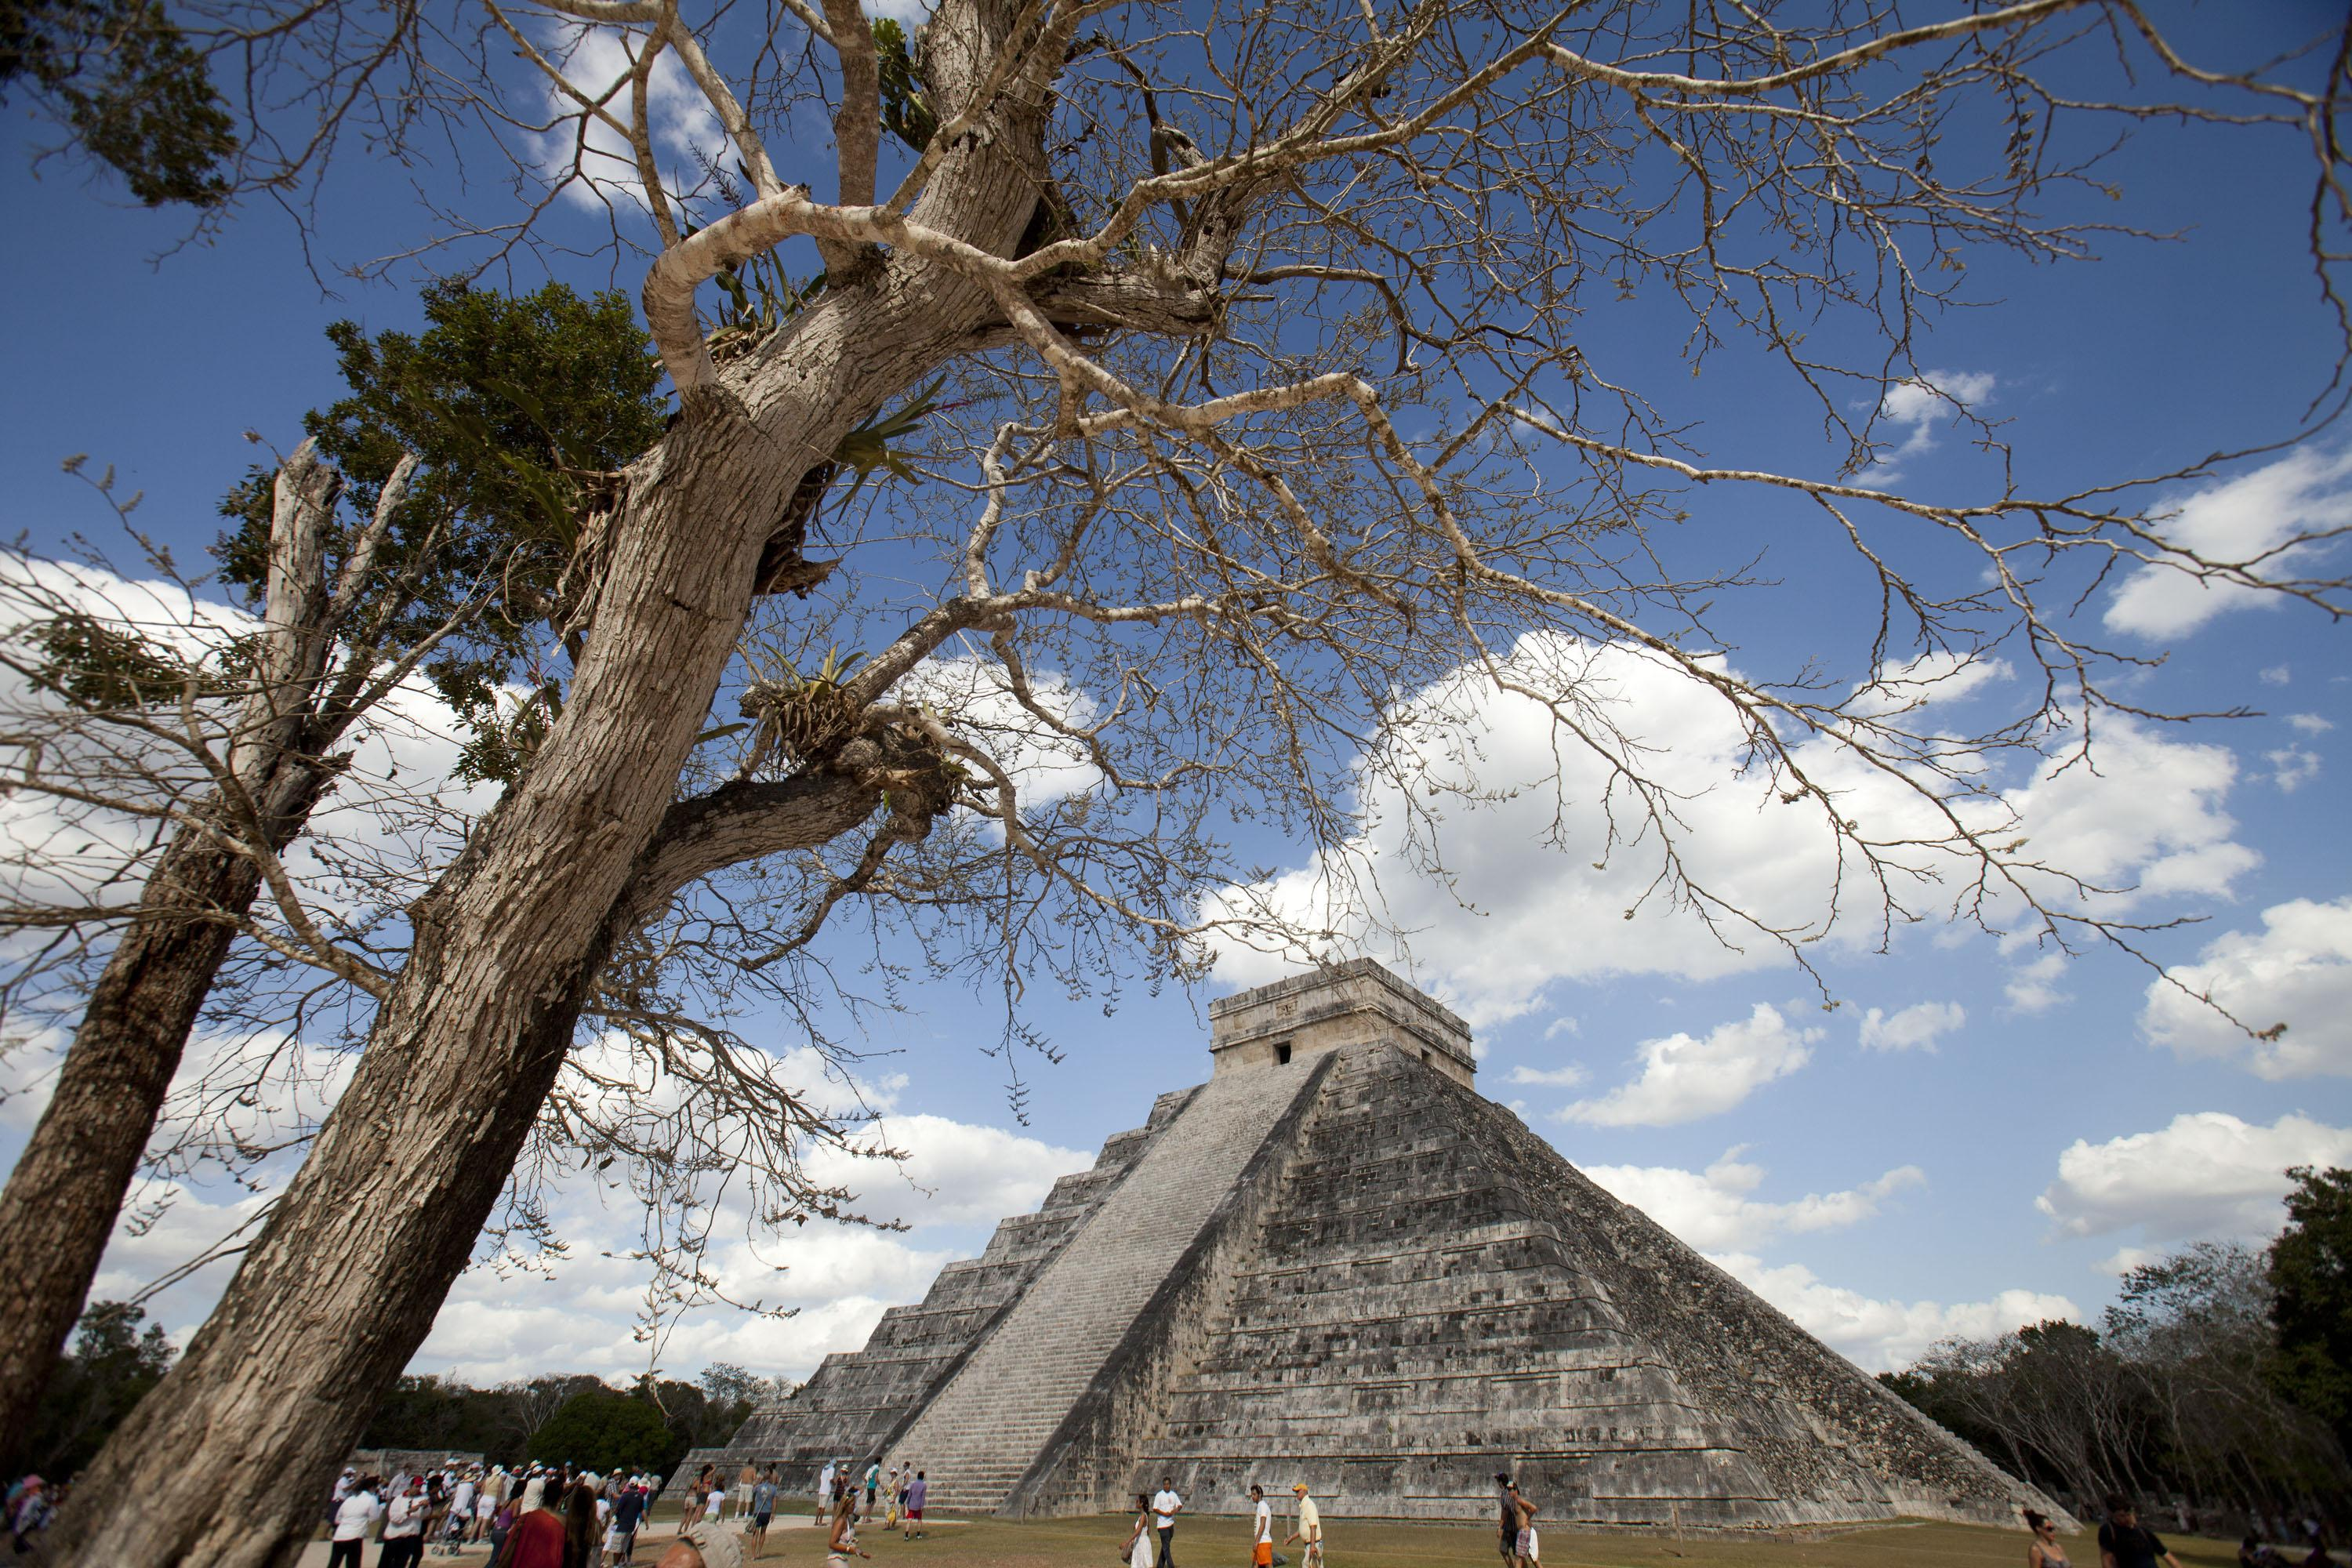 Why-Did-Mayan-Civilization-End-Theories